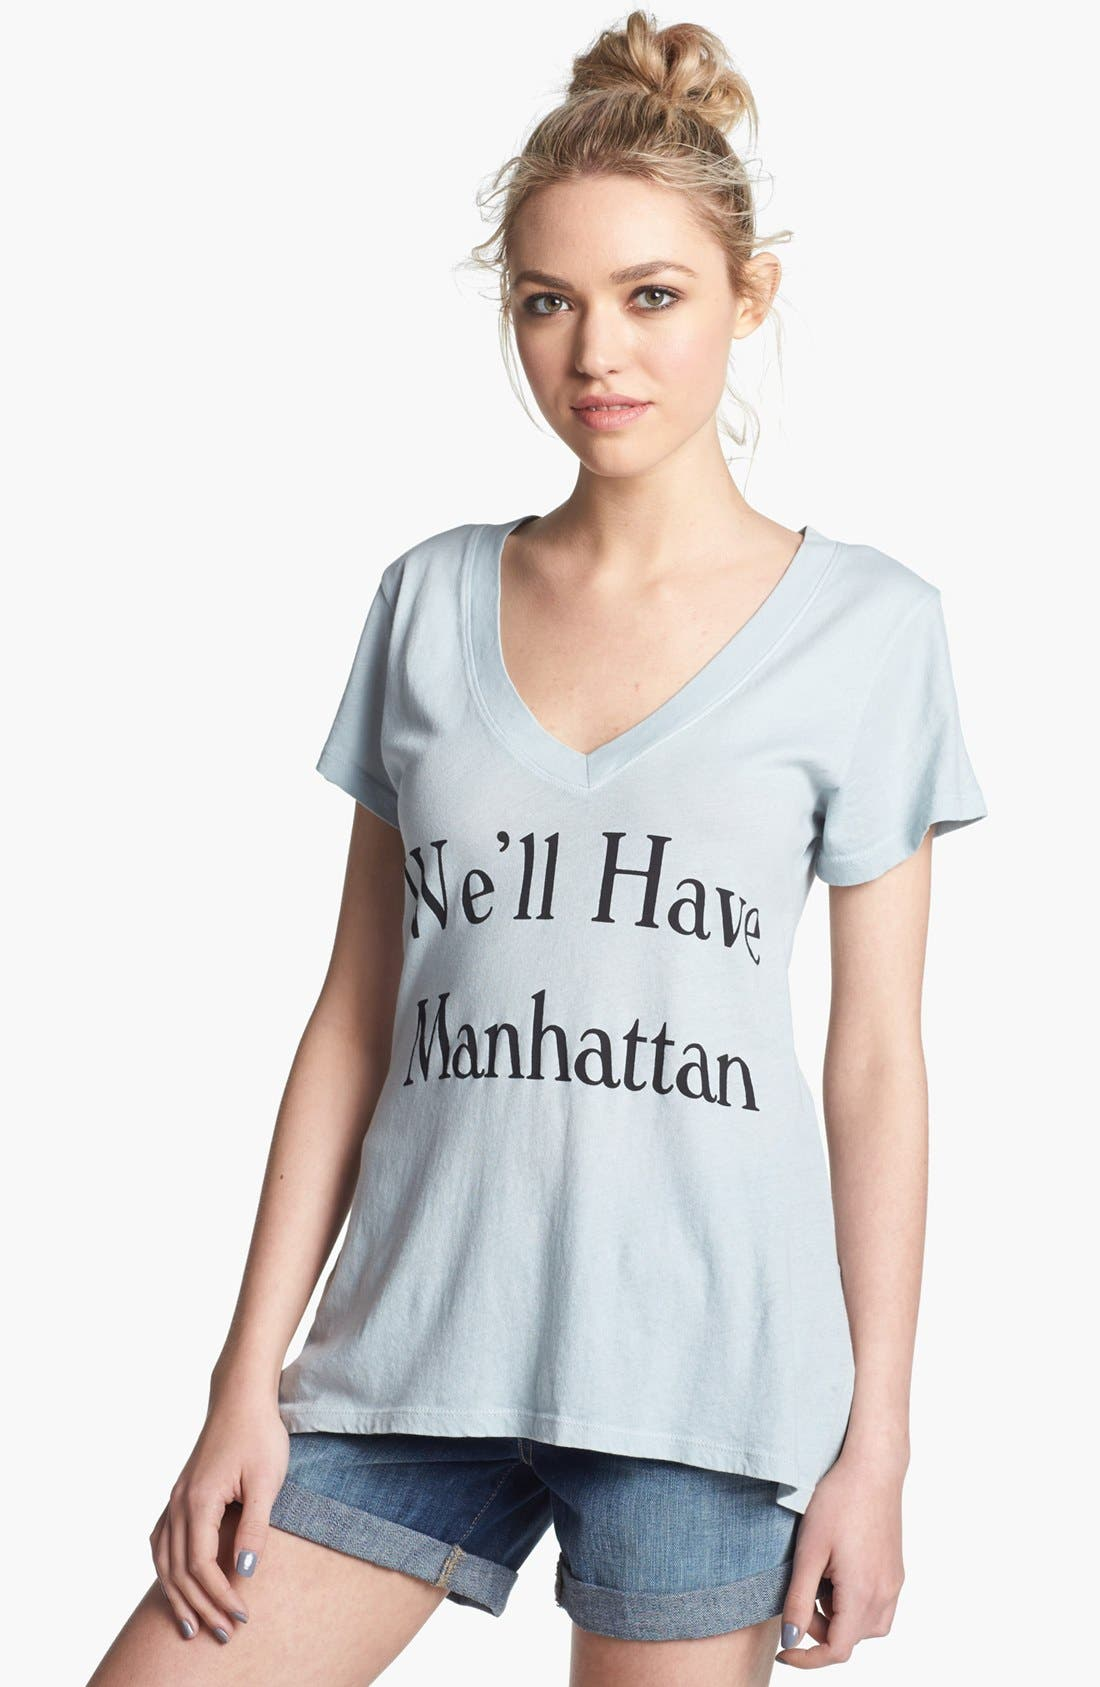 Alternate Image 1 Selected - Wildfox 'Manhattan' V-Neck Tee (Nordstrom Exclusive)